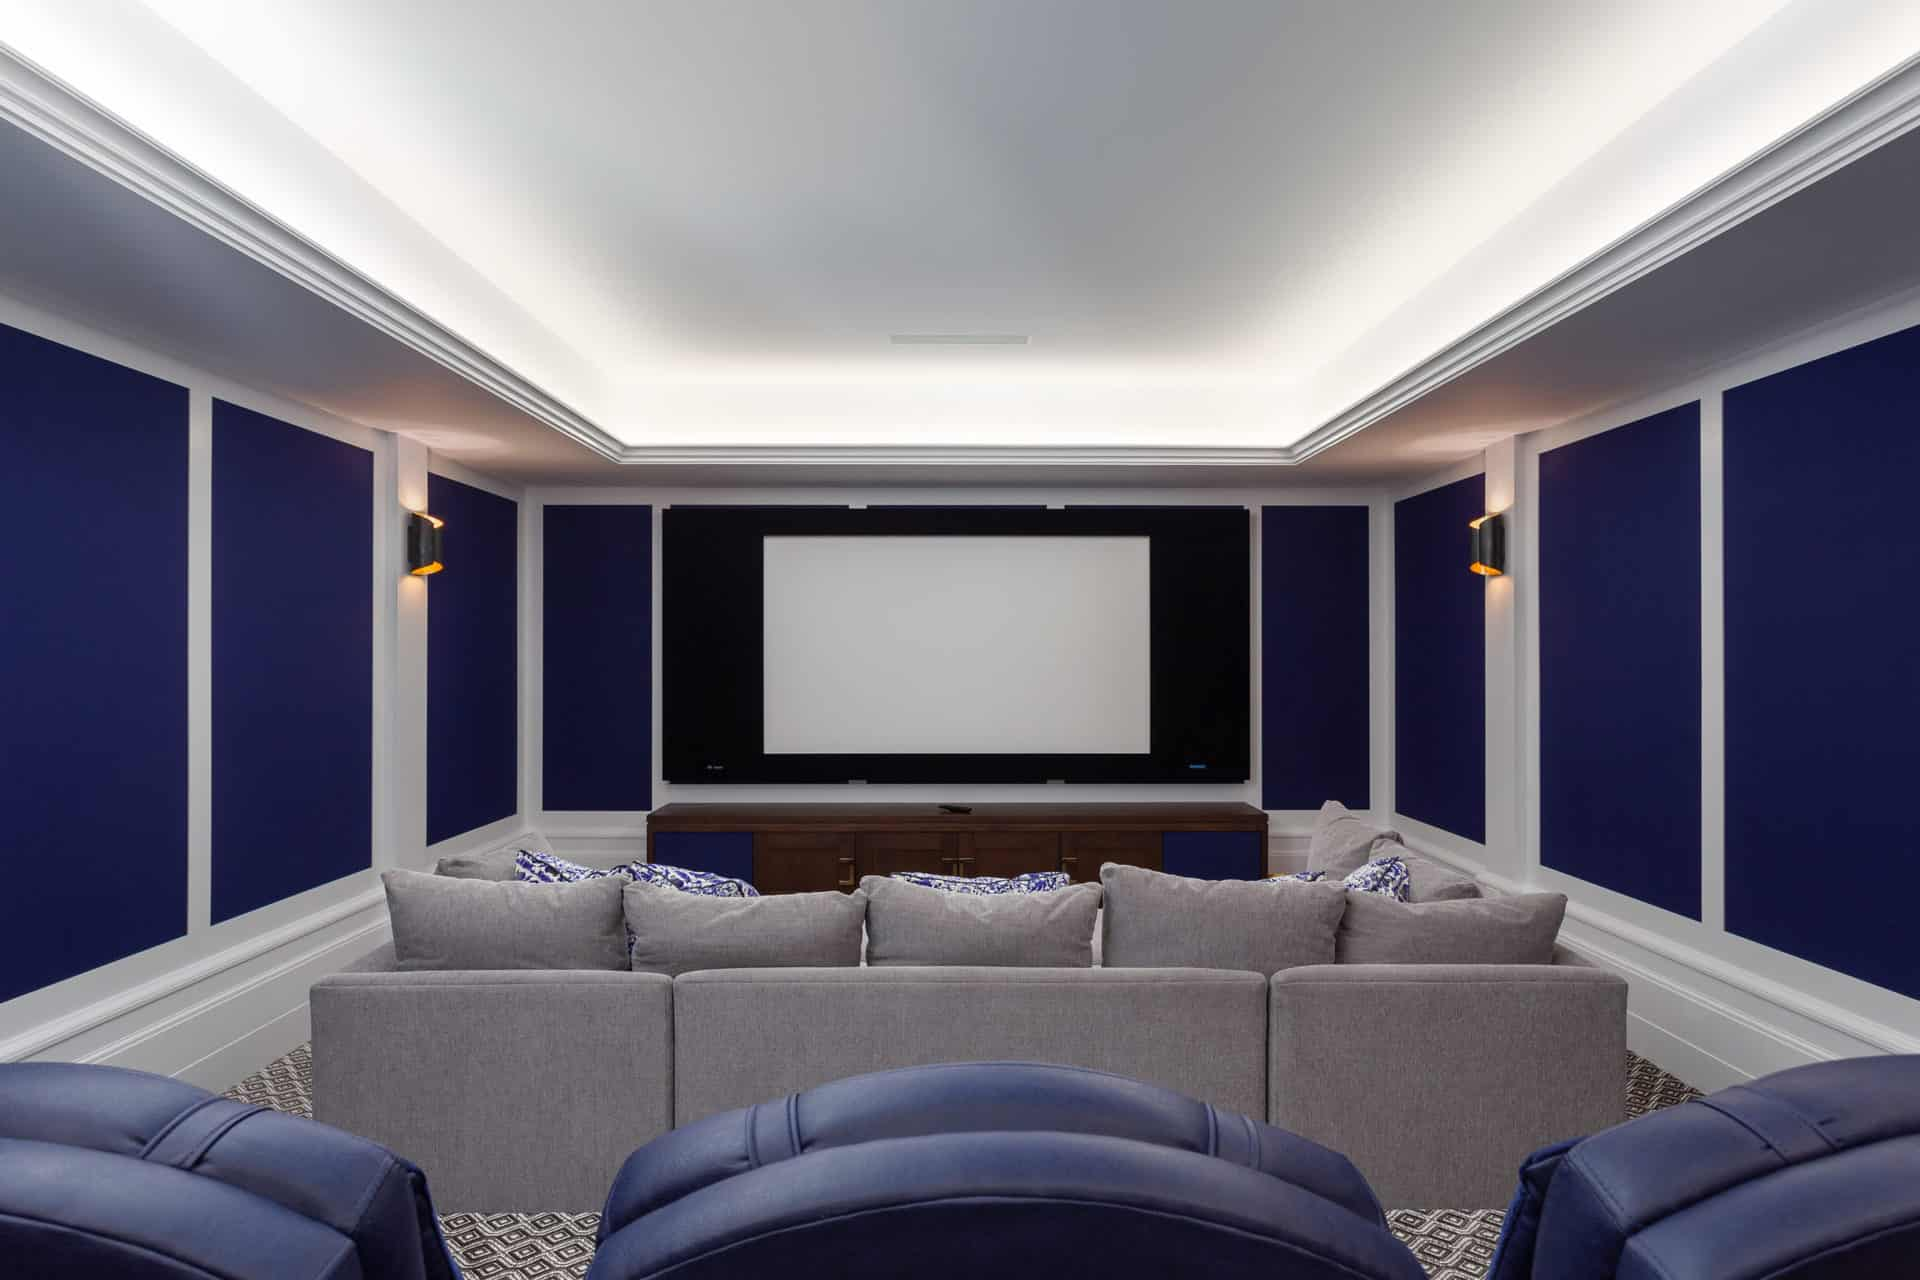 3 Scarsdale theater screen 0053